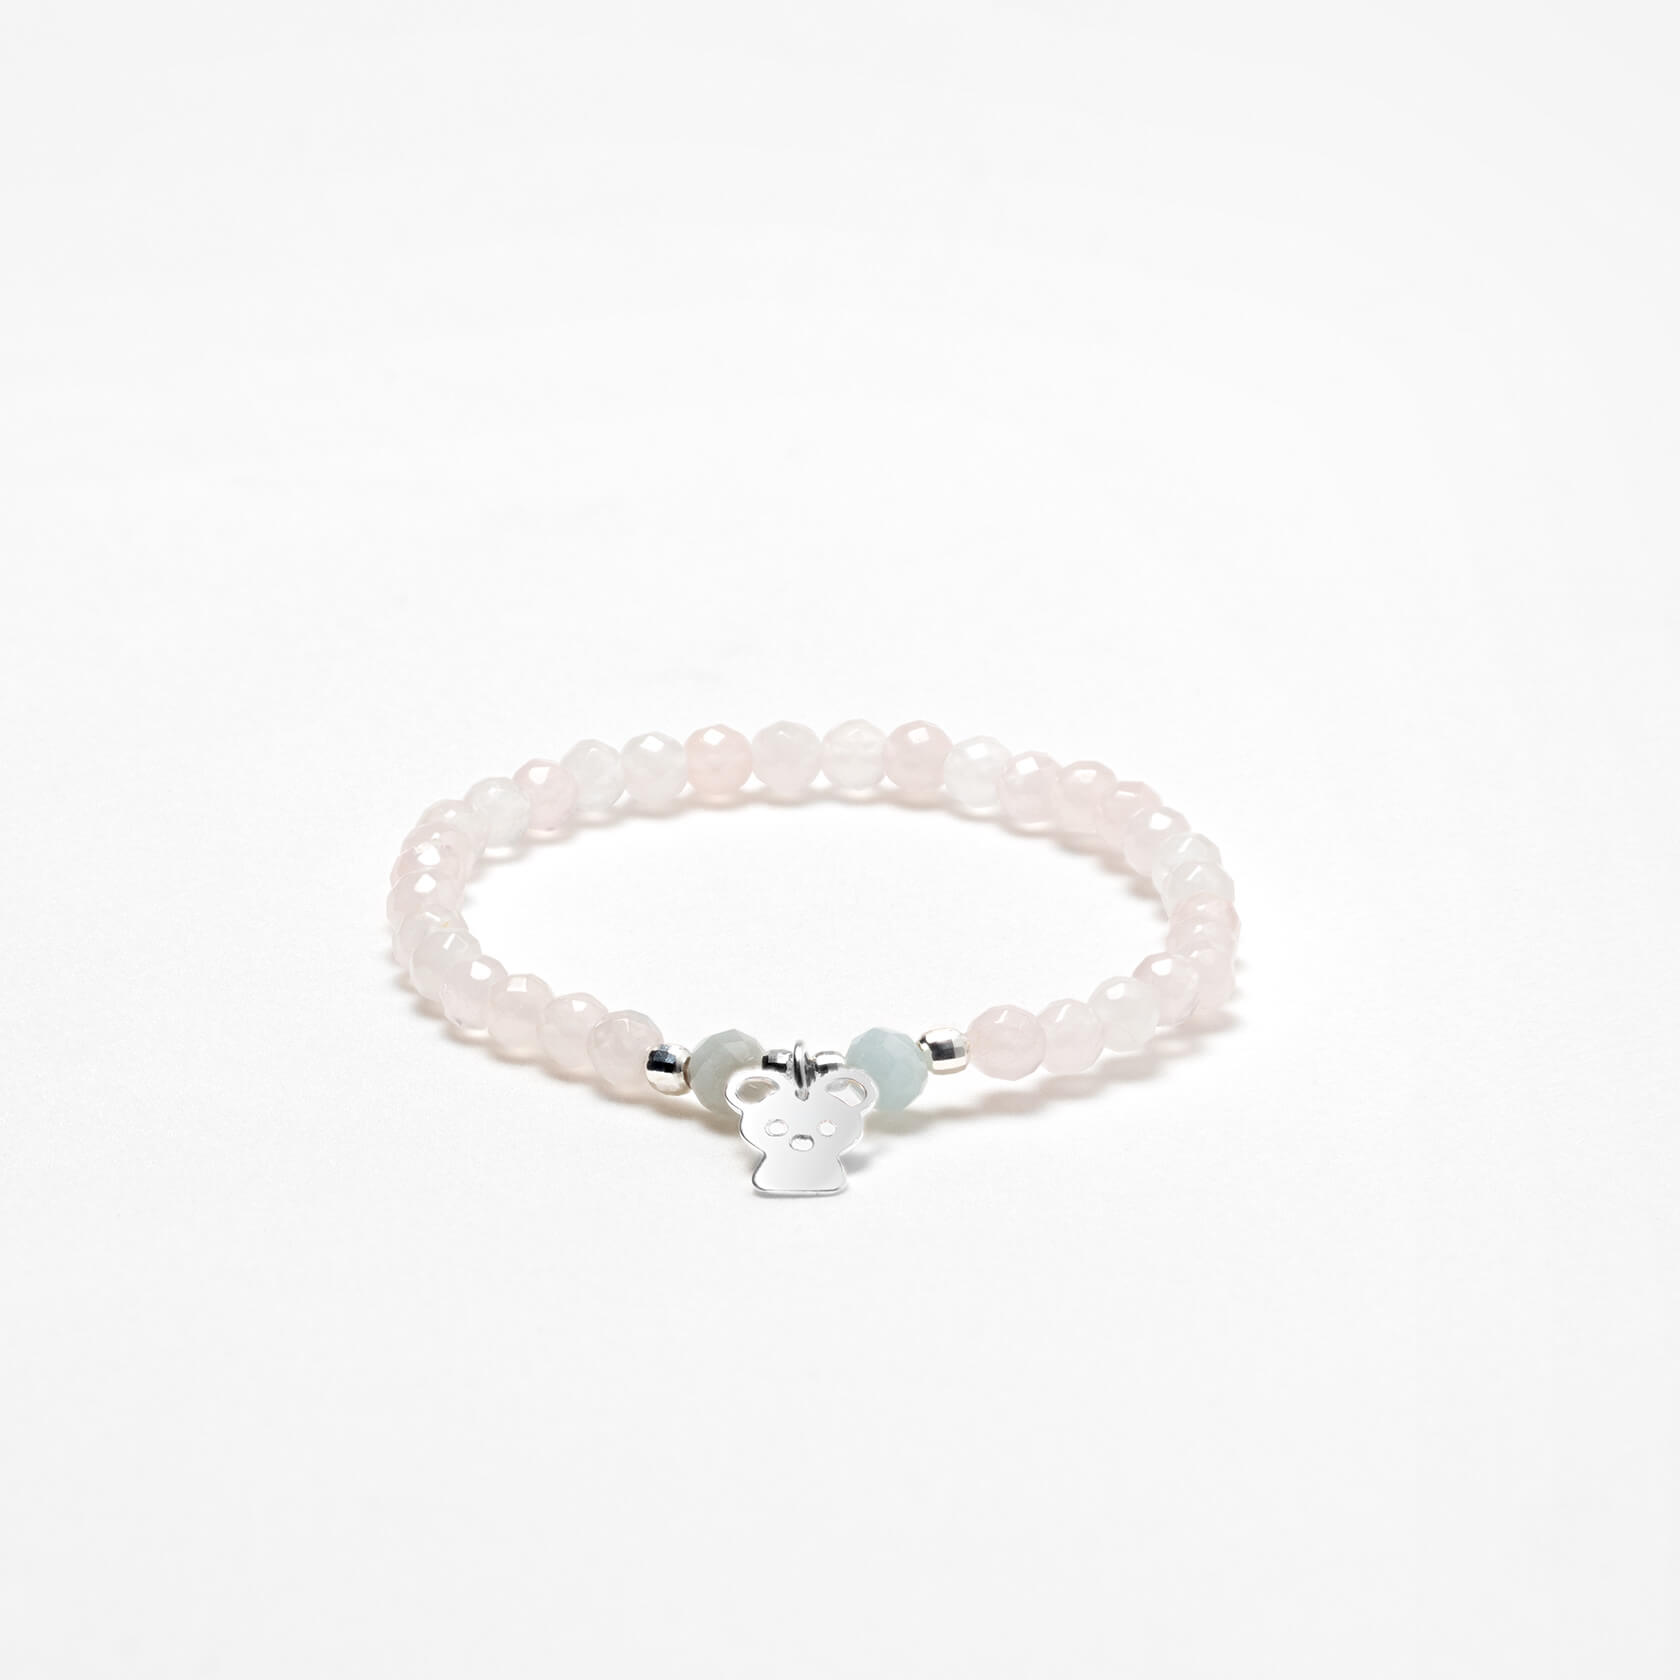 Nube rose quartz and aquamarine bracelet